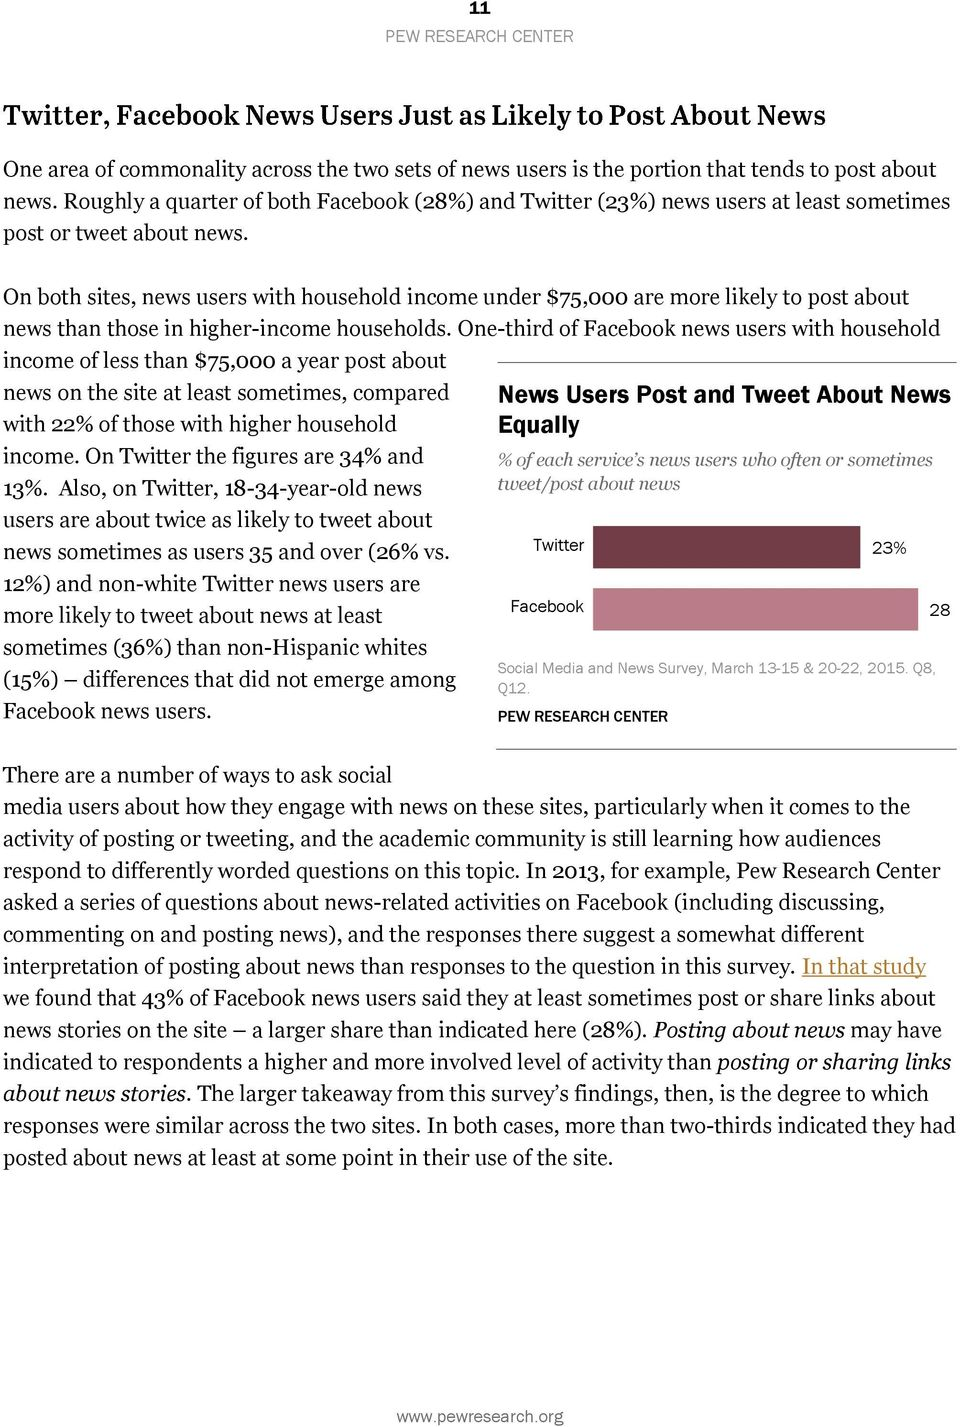 On both sites, news users with household income under $75,000 are more likely to post about news than those in higher-income households.